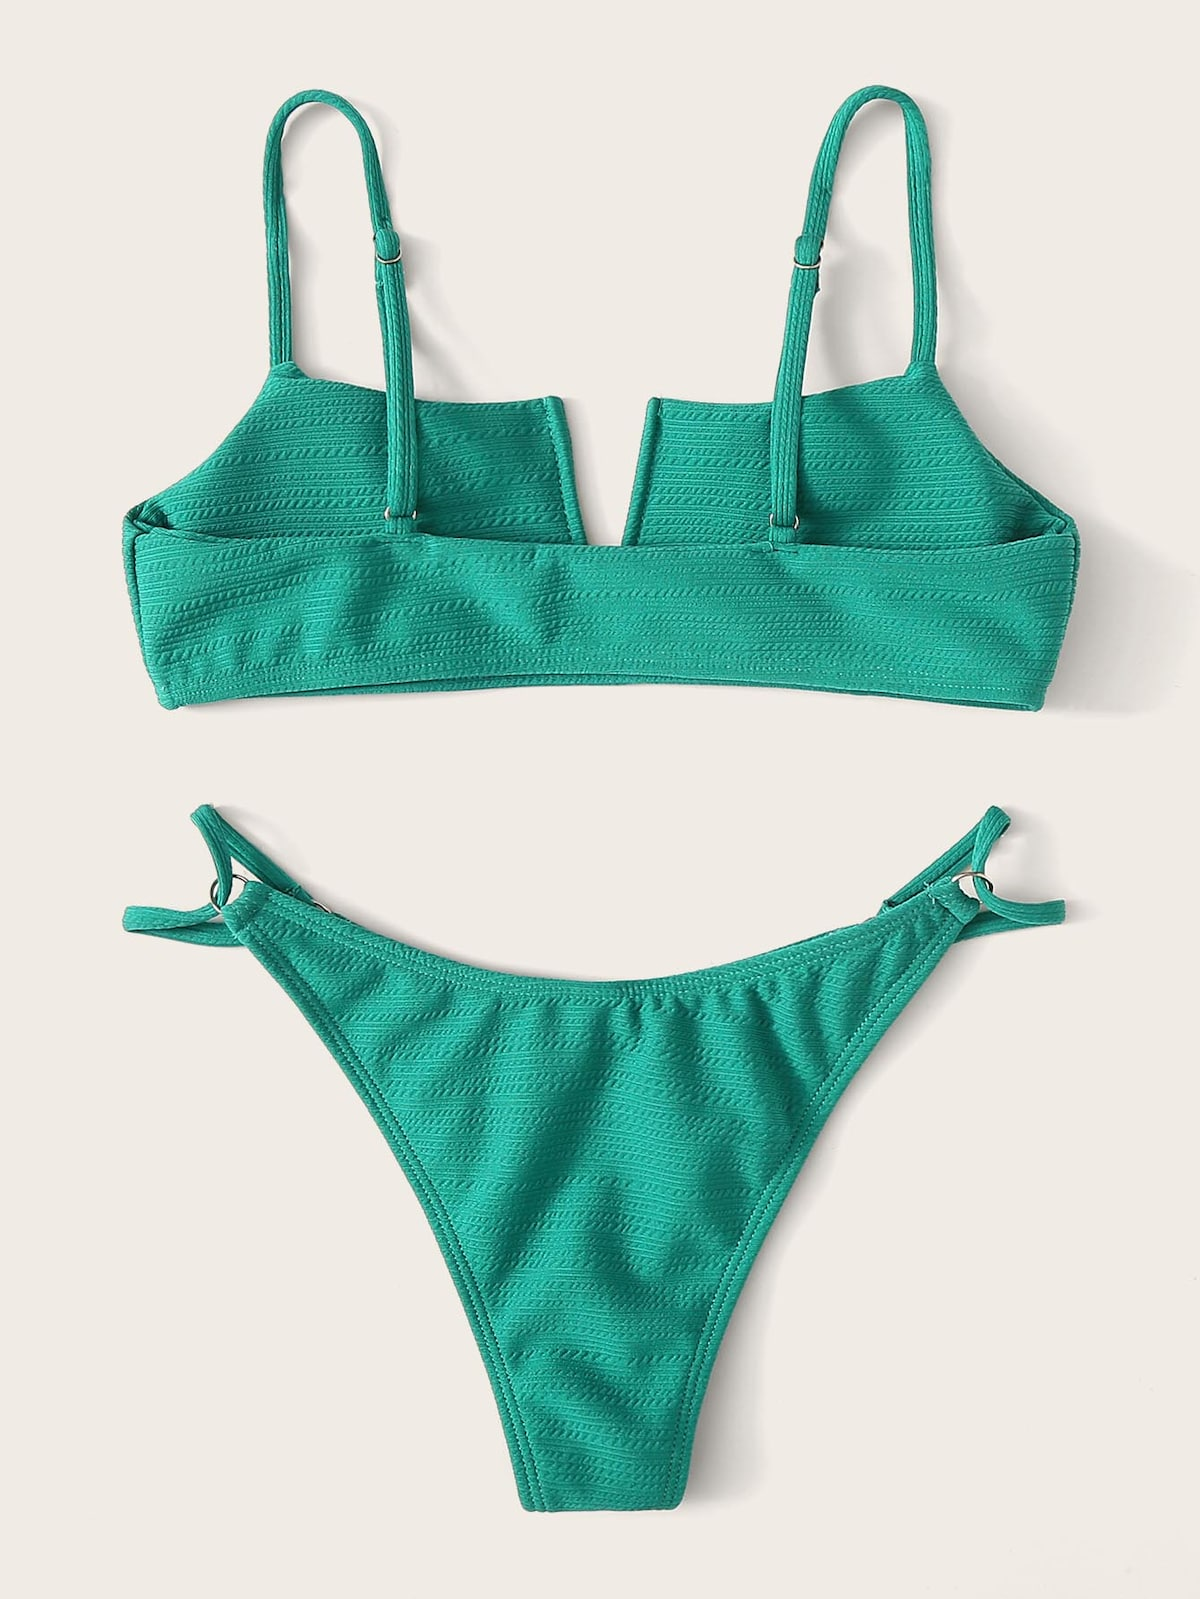 EWMOR - V-Cut Textured Top With Tanga Bikini Set